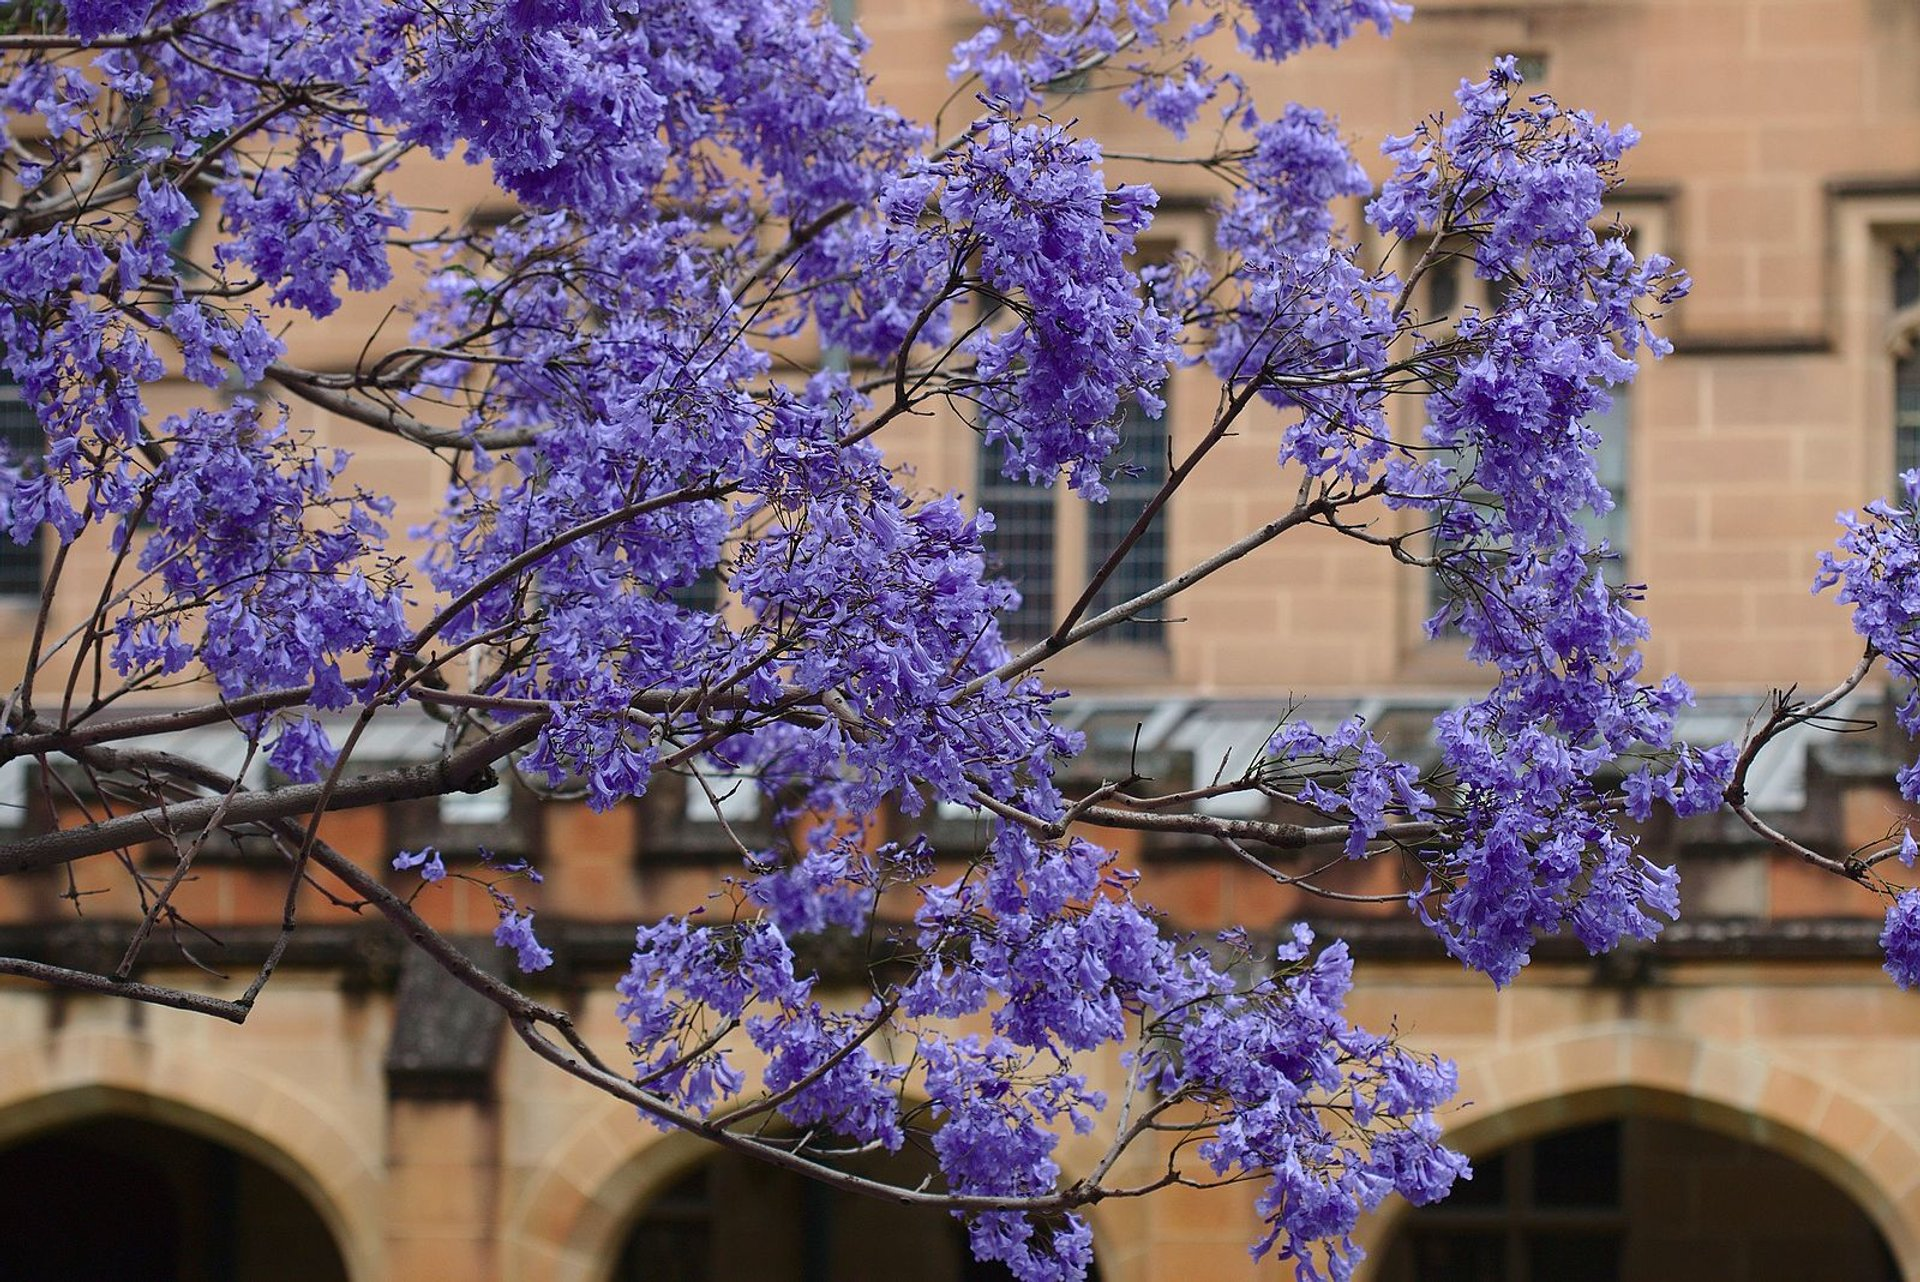 Jacaranda Trees in Bloom in Sydney - Best Season